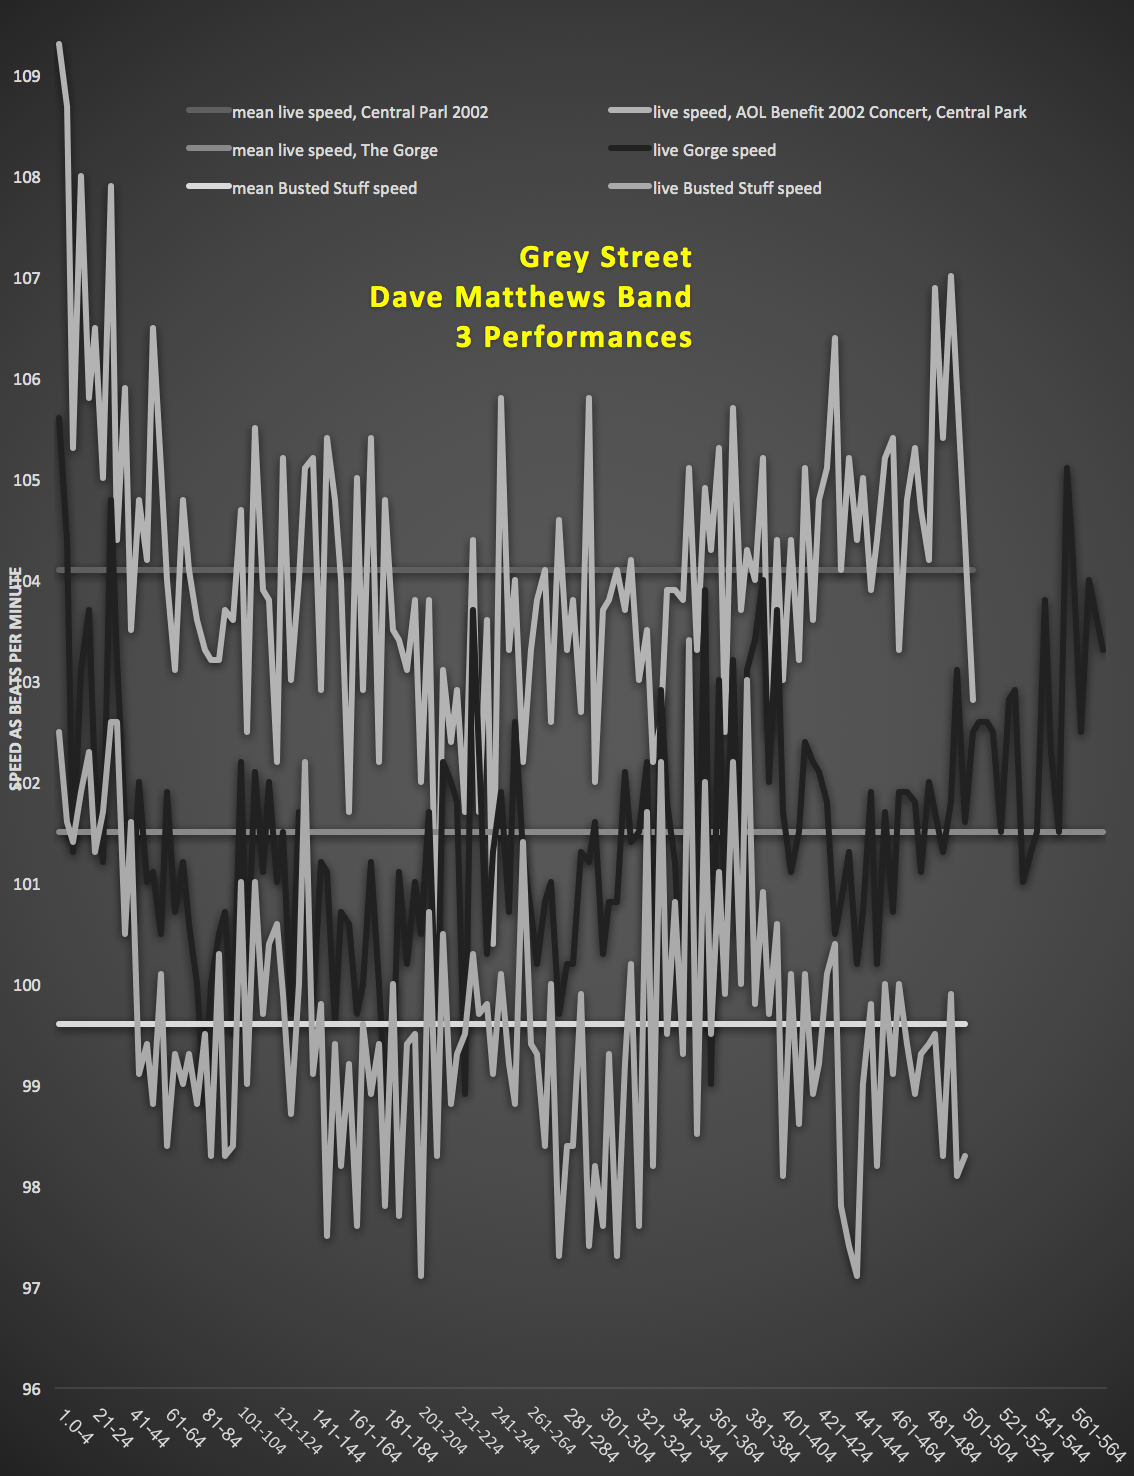 Dave Mathews Band – GREY STREET – harmonic tempo diagrams – matherton unclassified speed charts